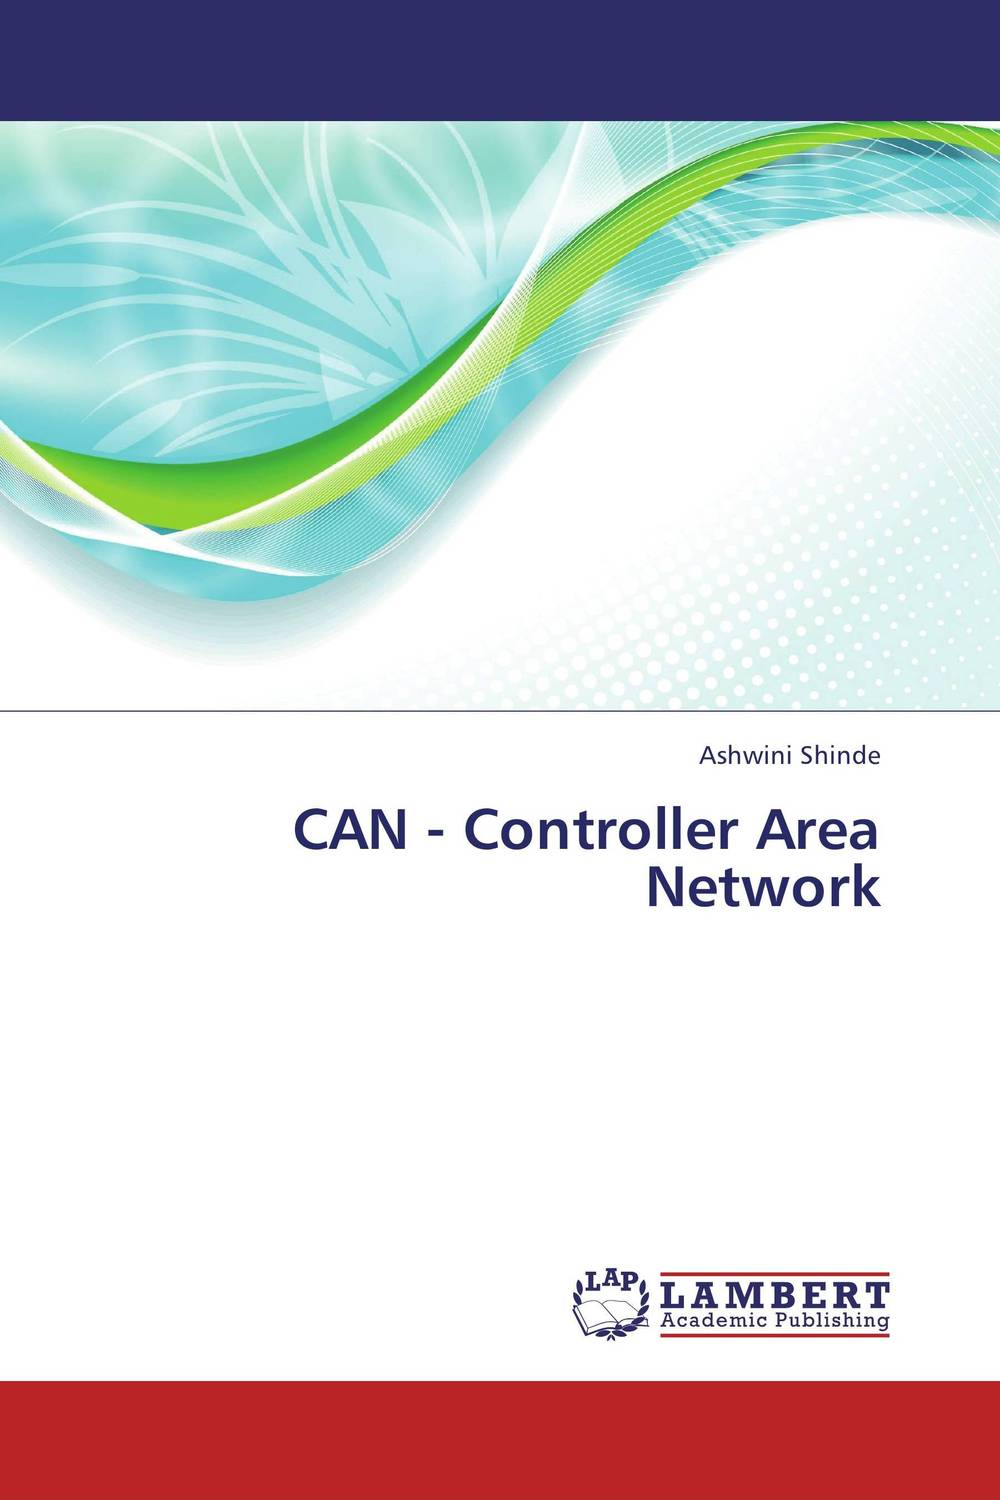 CAN - Controller Area Network  vs1024bn new pwm controller network access computer control can connect with mt50 for communication